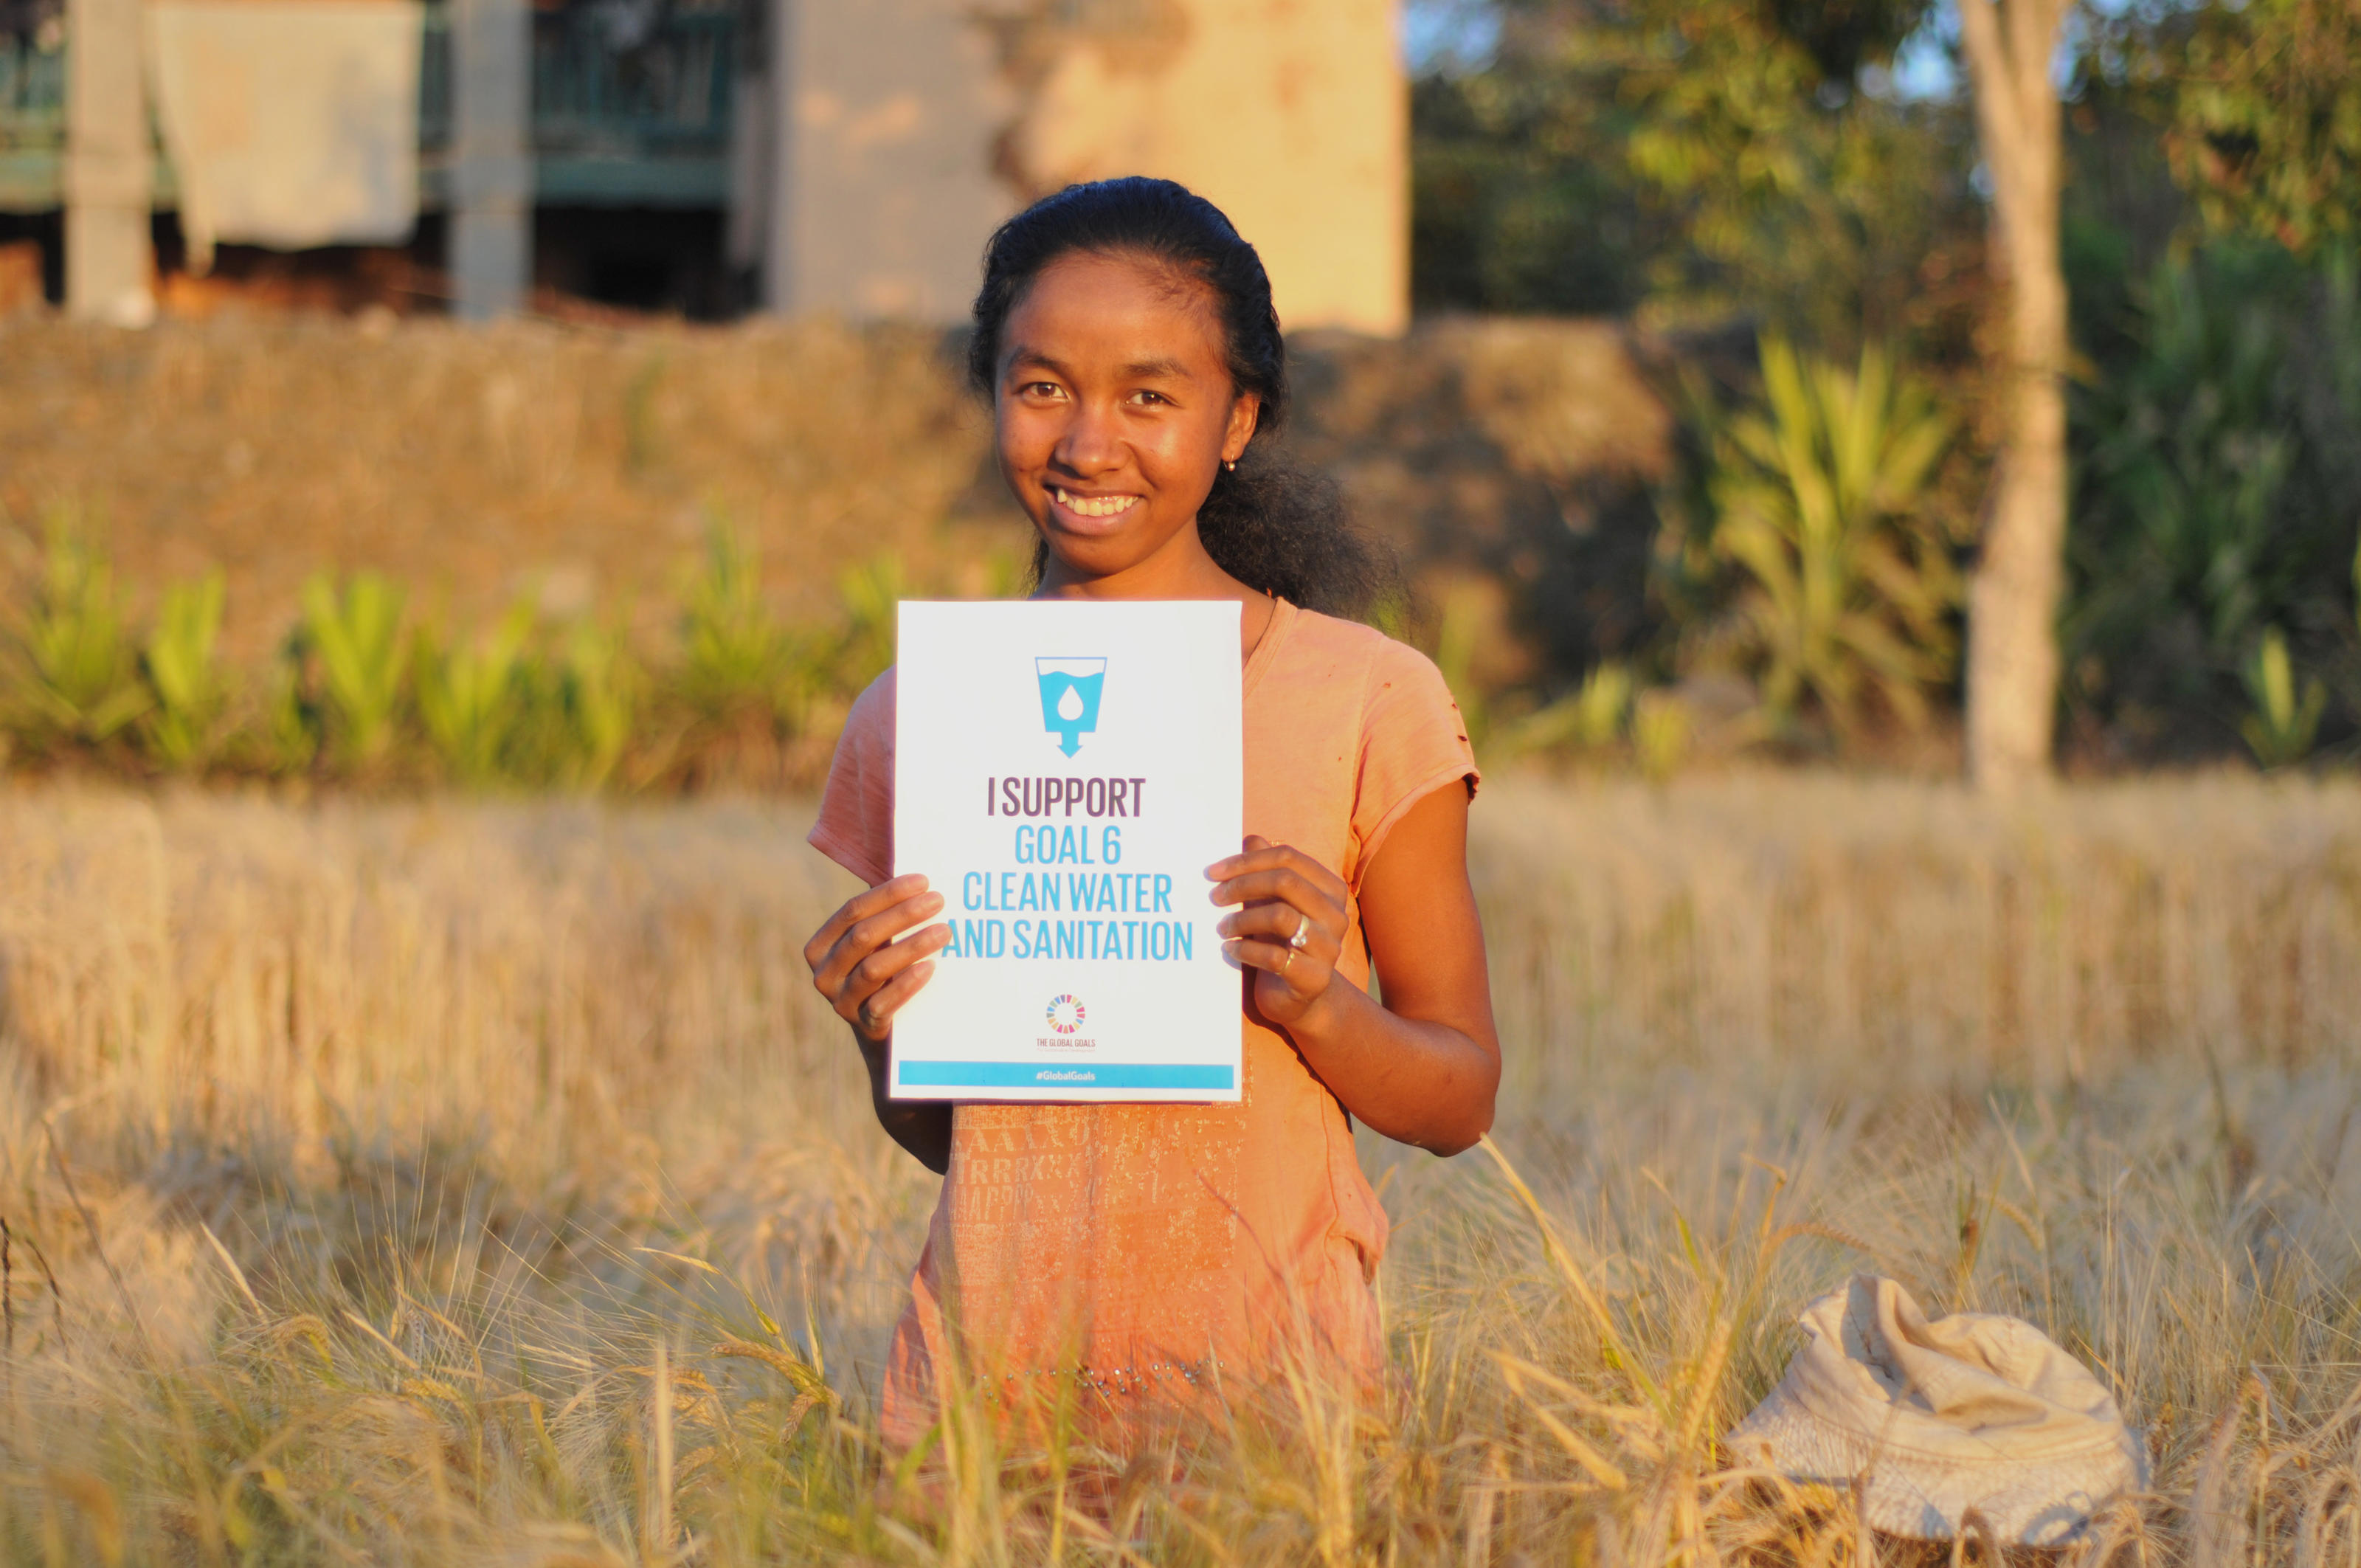 Vero supporting Global Goal six 'Clean water and sanitation.' Madagascar. September 2015.